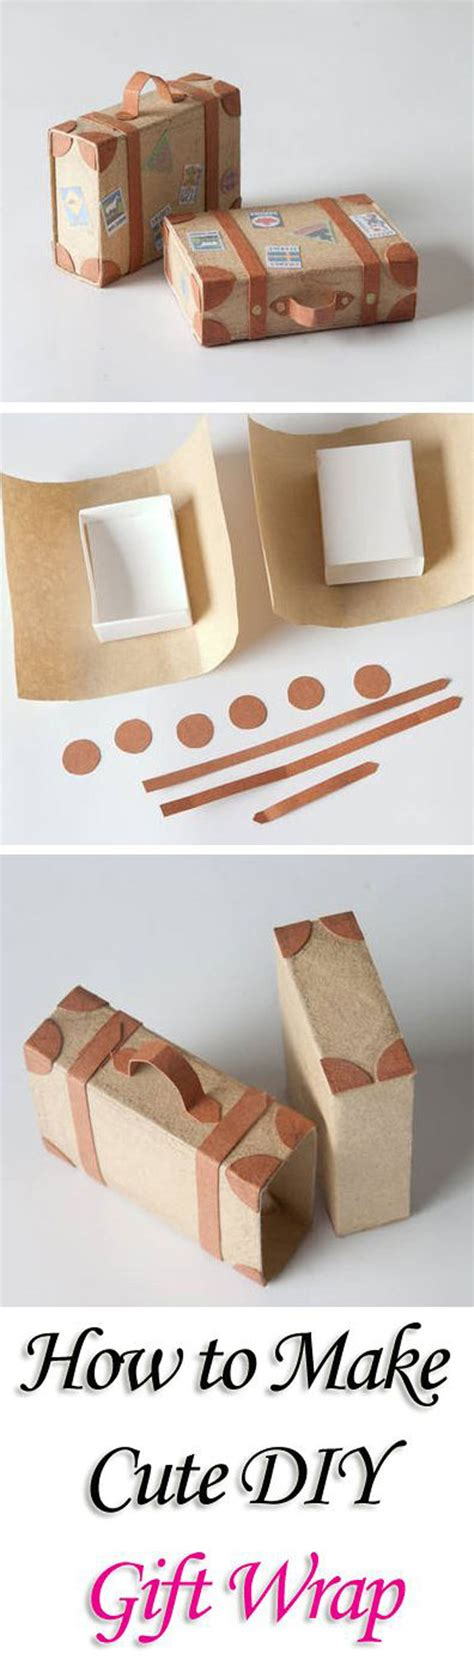 How To Make Gift Wrapping Paper At Home - 52 insanely clever gift wrapping ideas you ll page